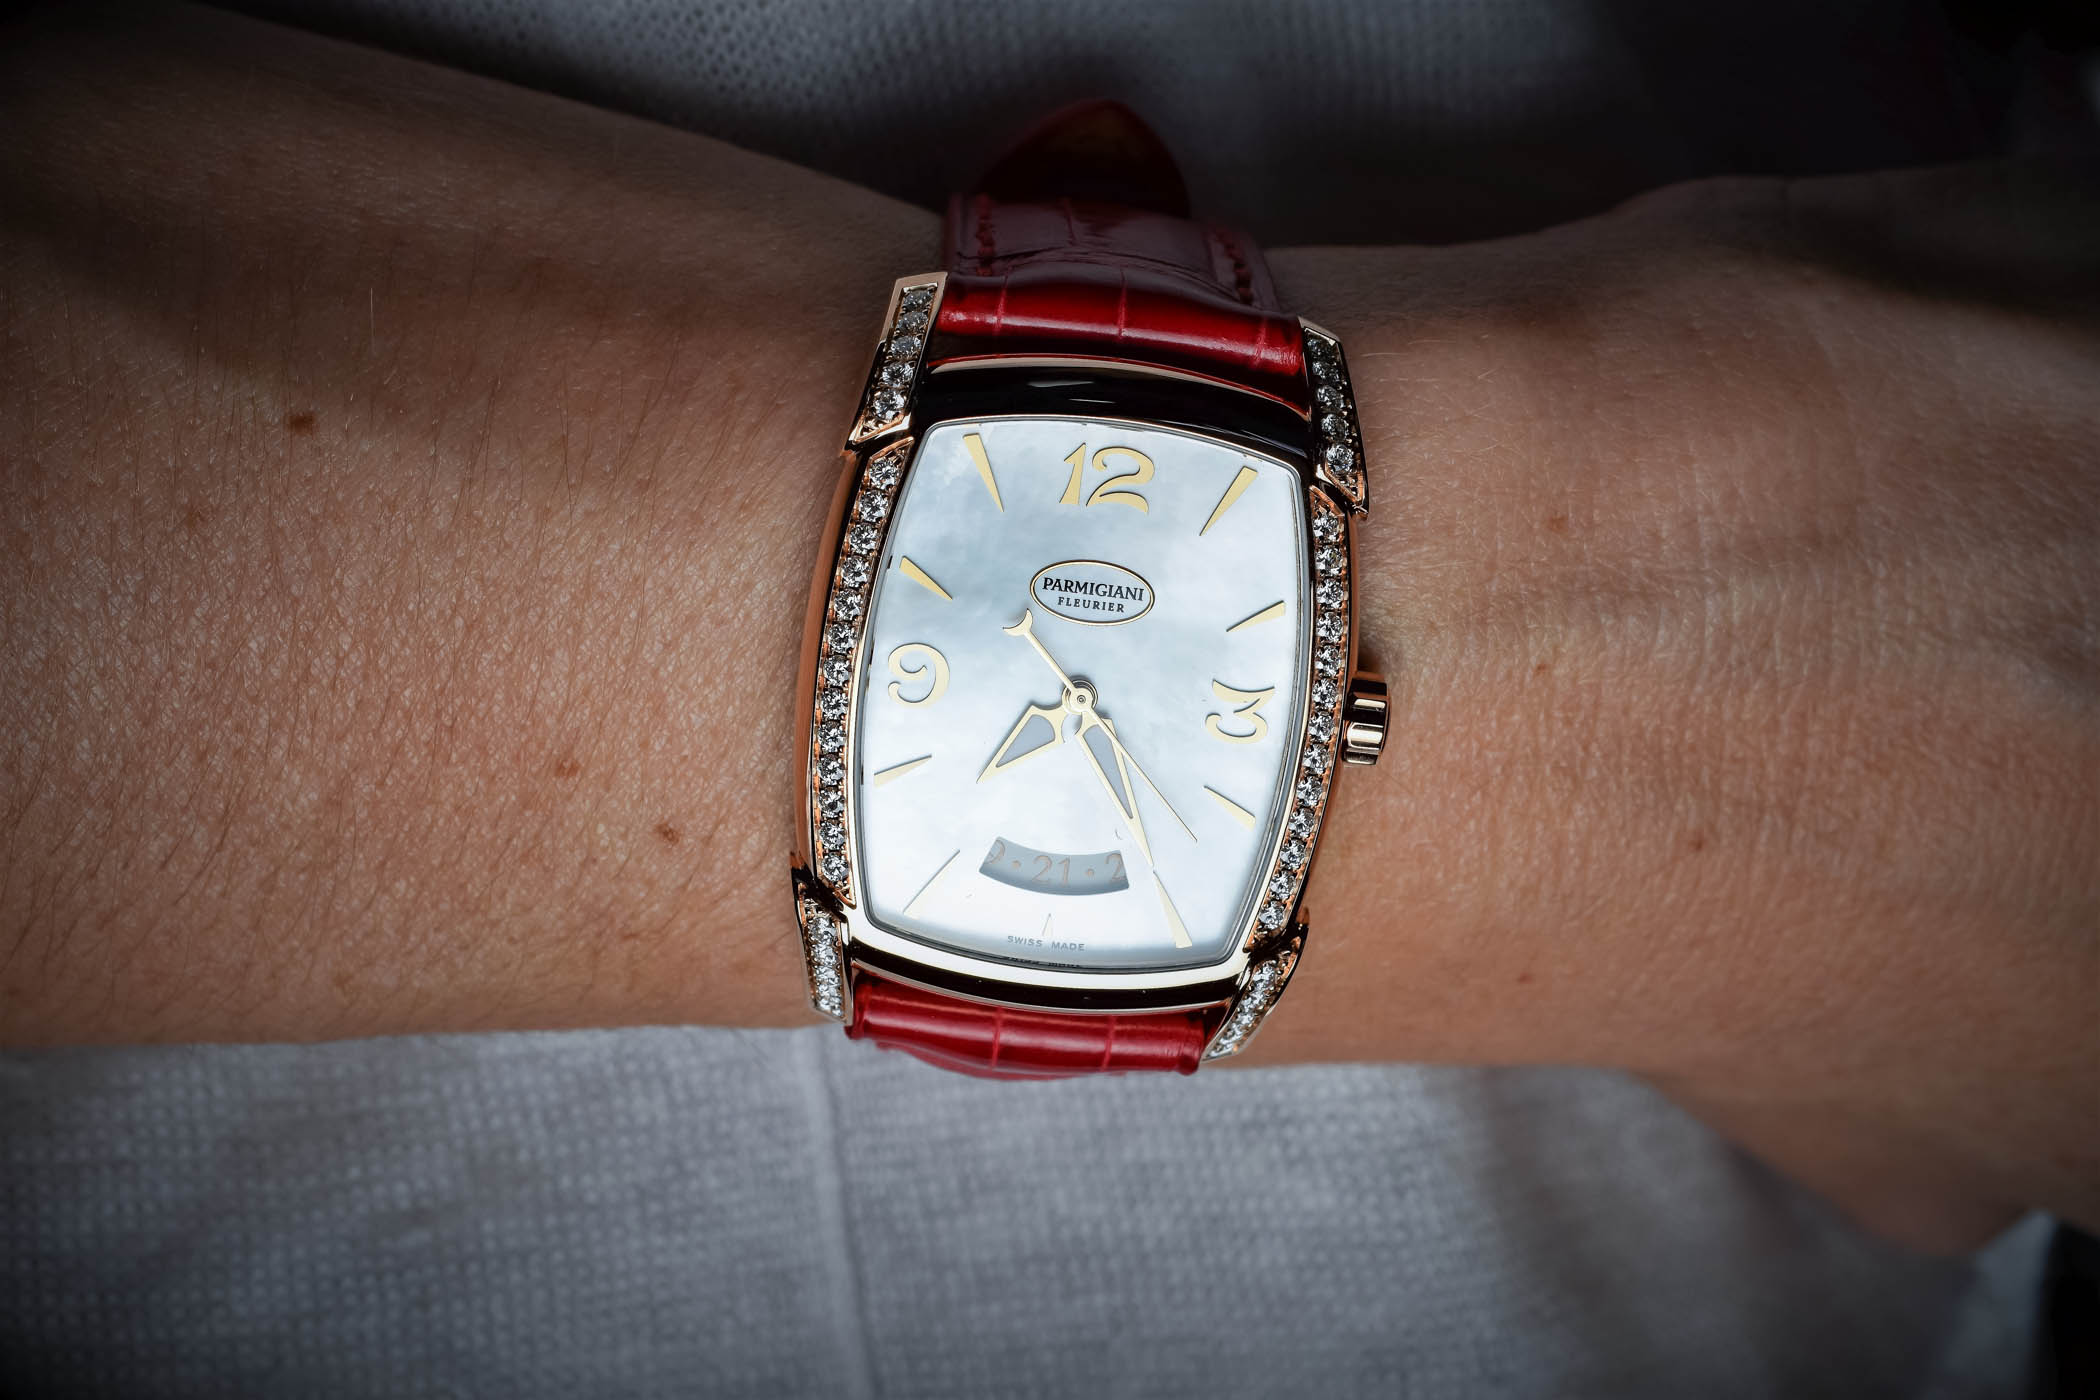 Parmigiani Fleurier Kalparisma ladies watch - hands-on